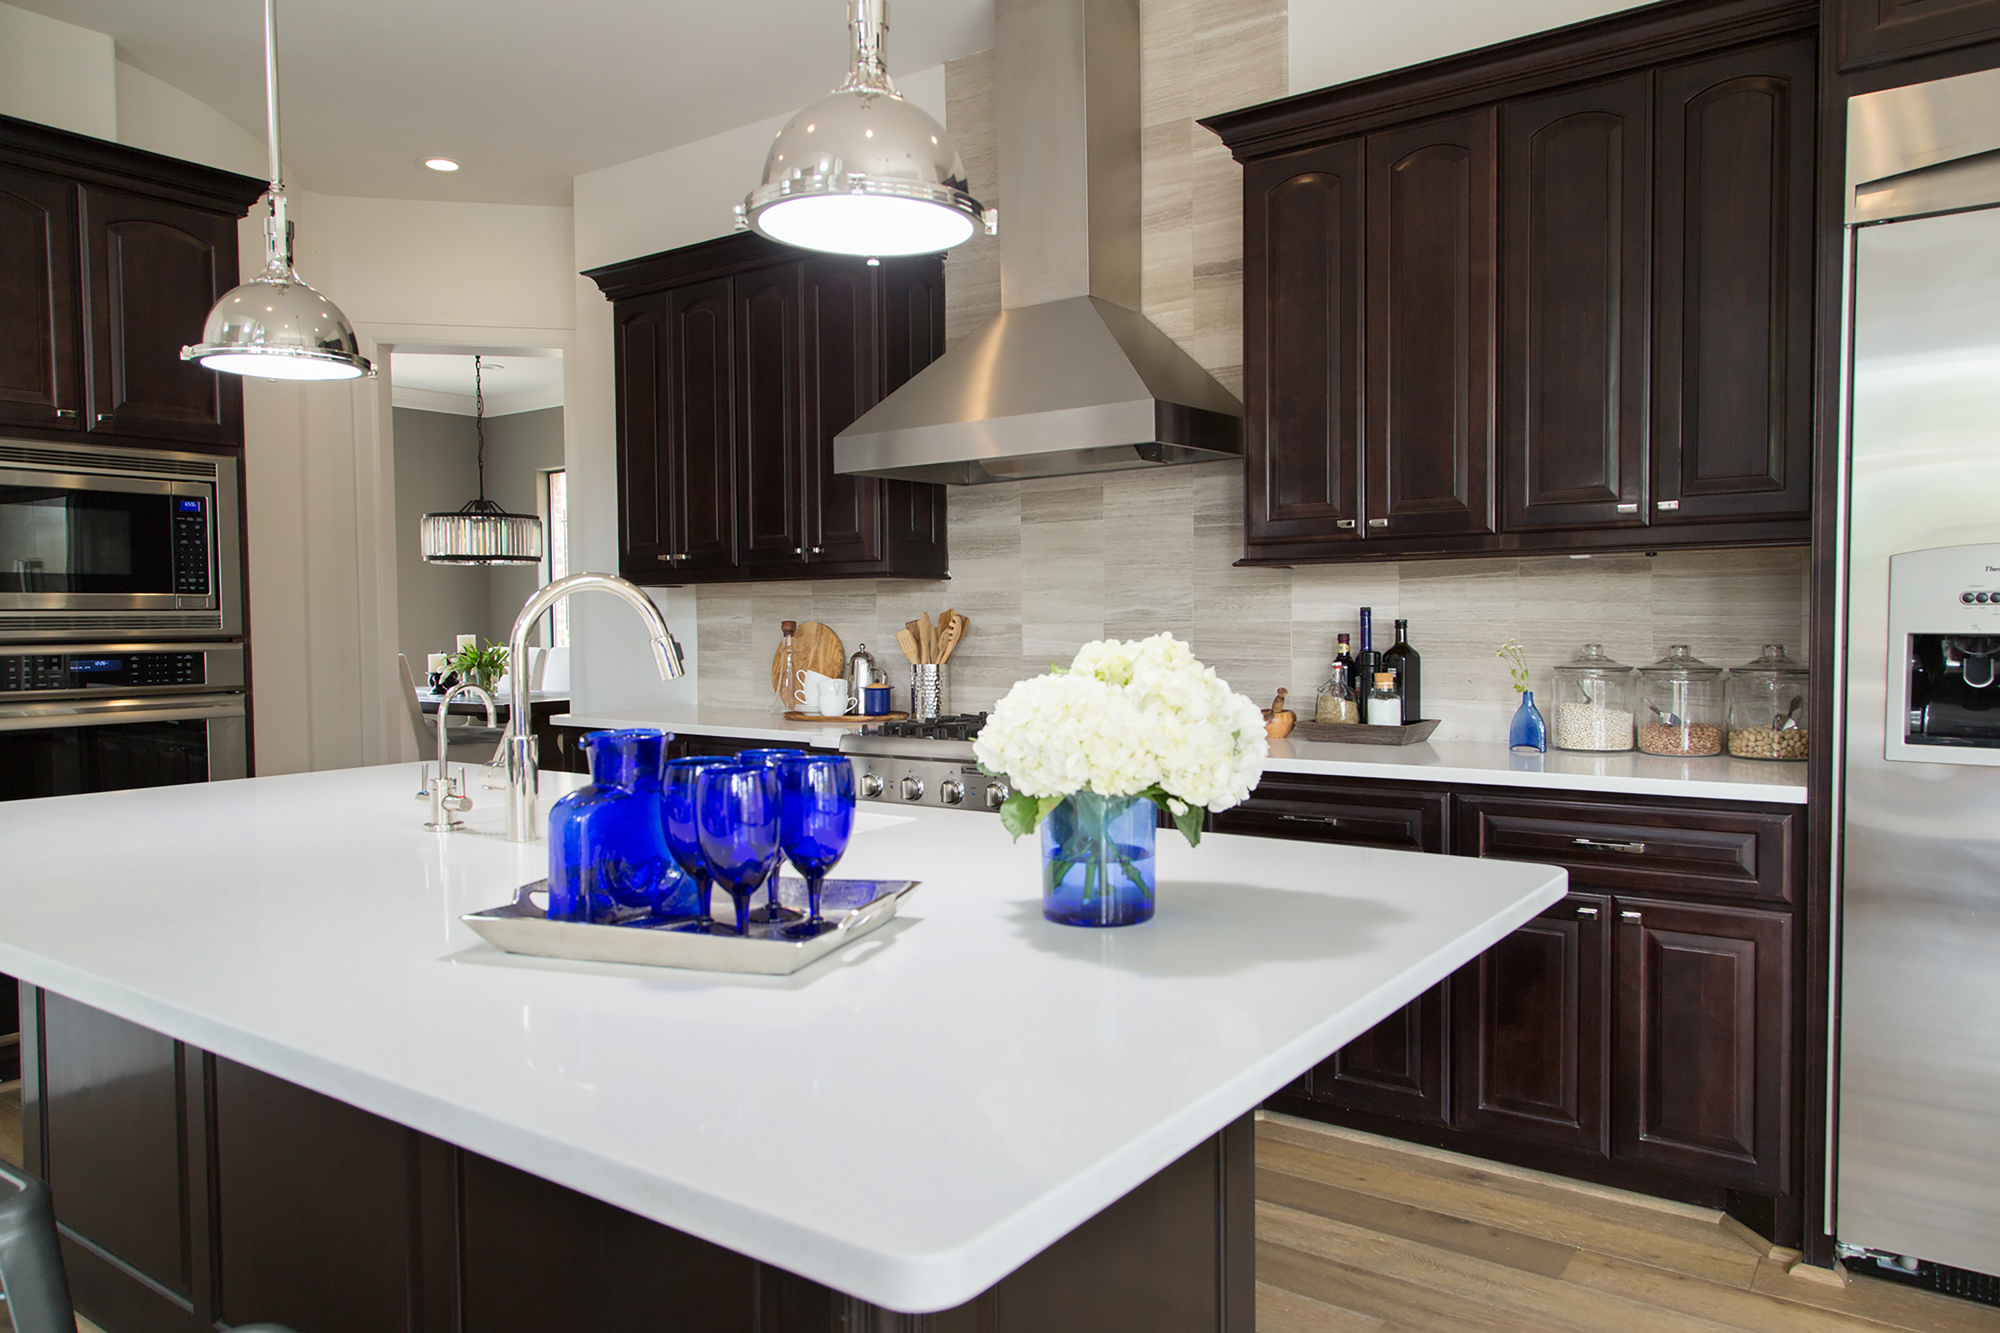 kitchen remodel; lighting; Island; cabinetry | Interior Designer: Carla Aston / Photographer: Tori Aston